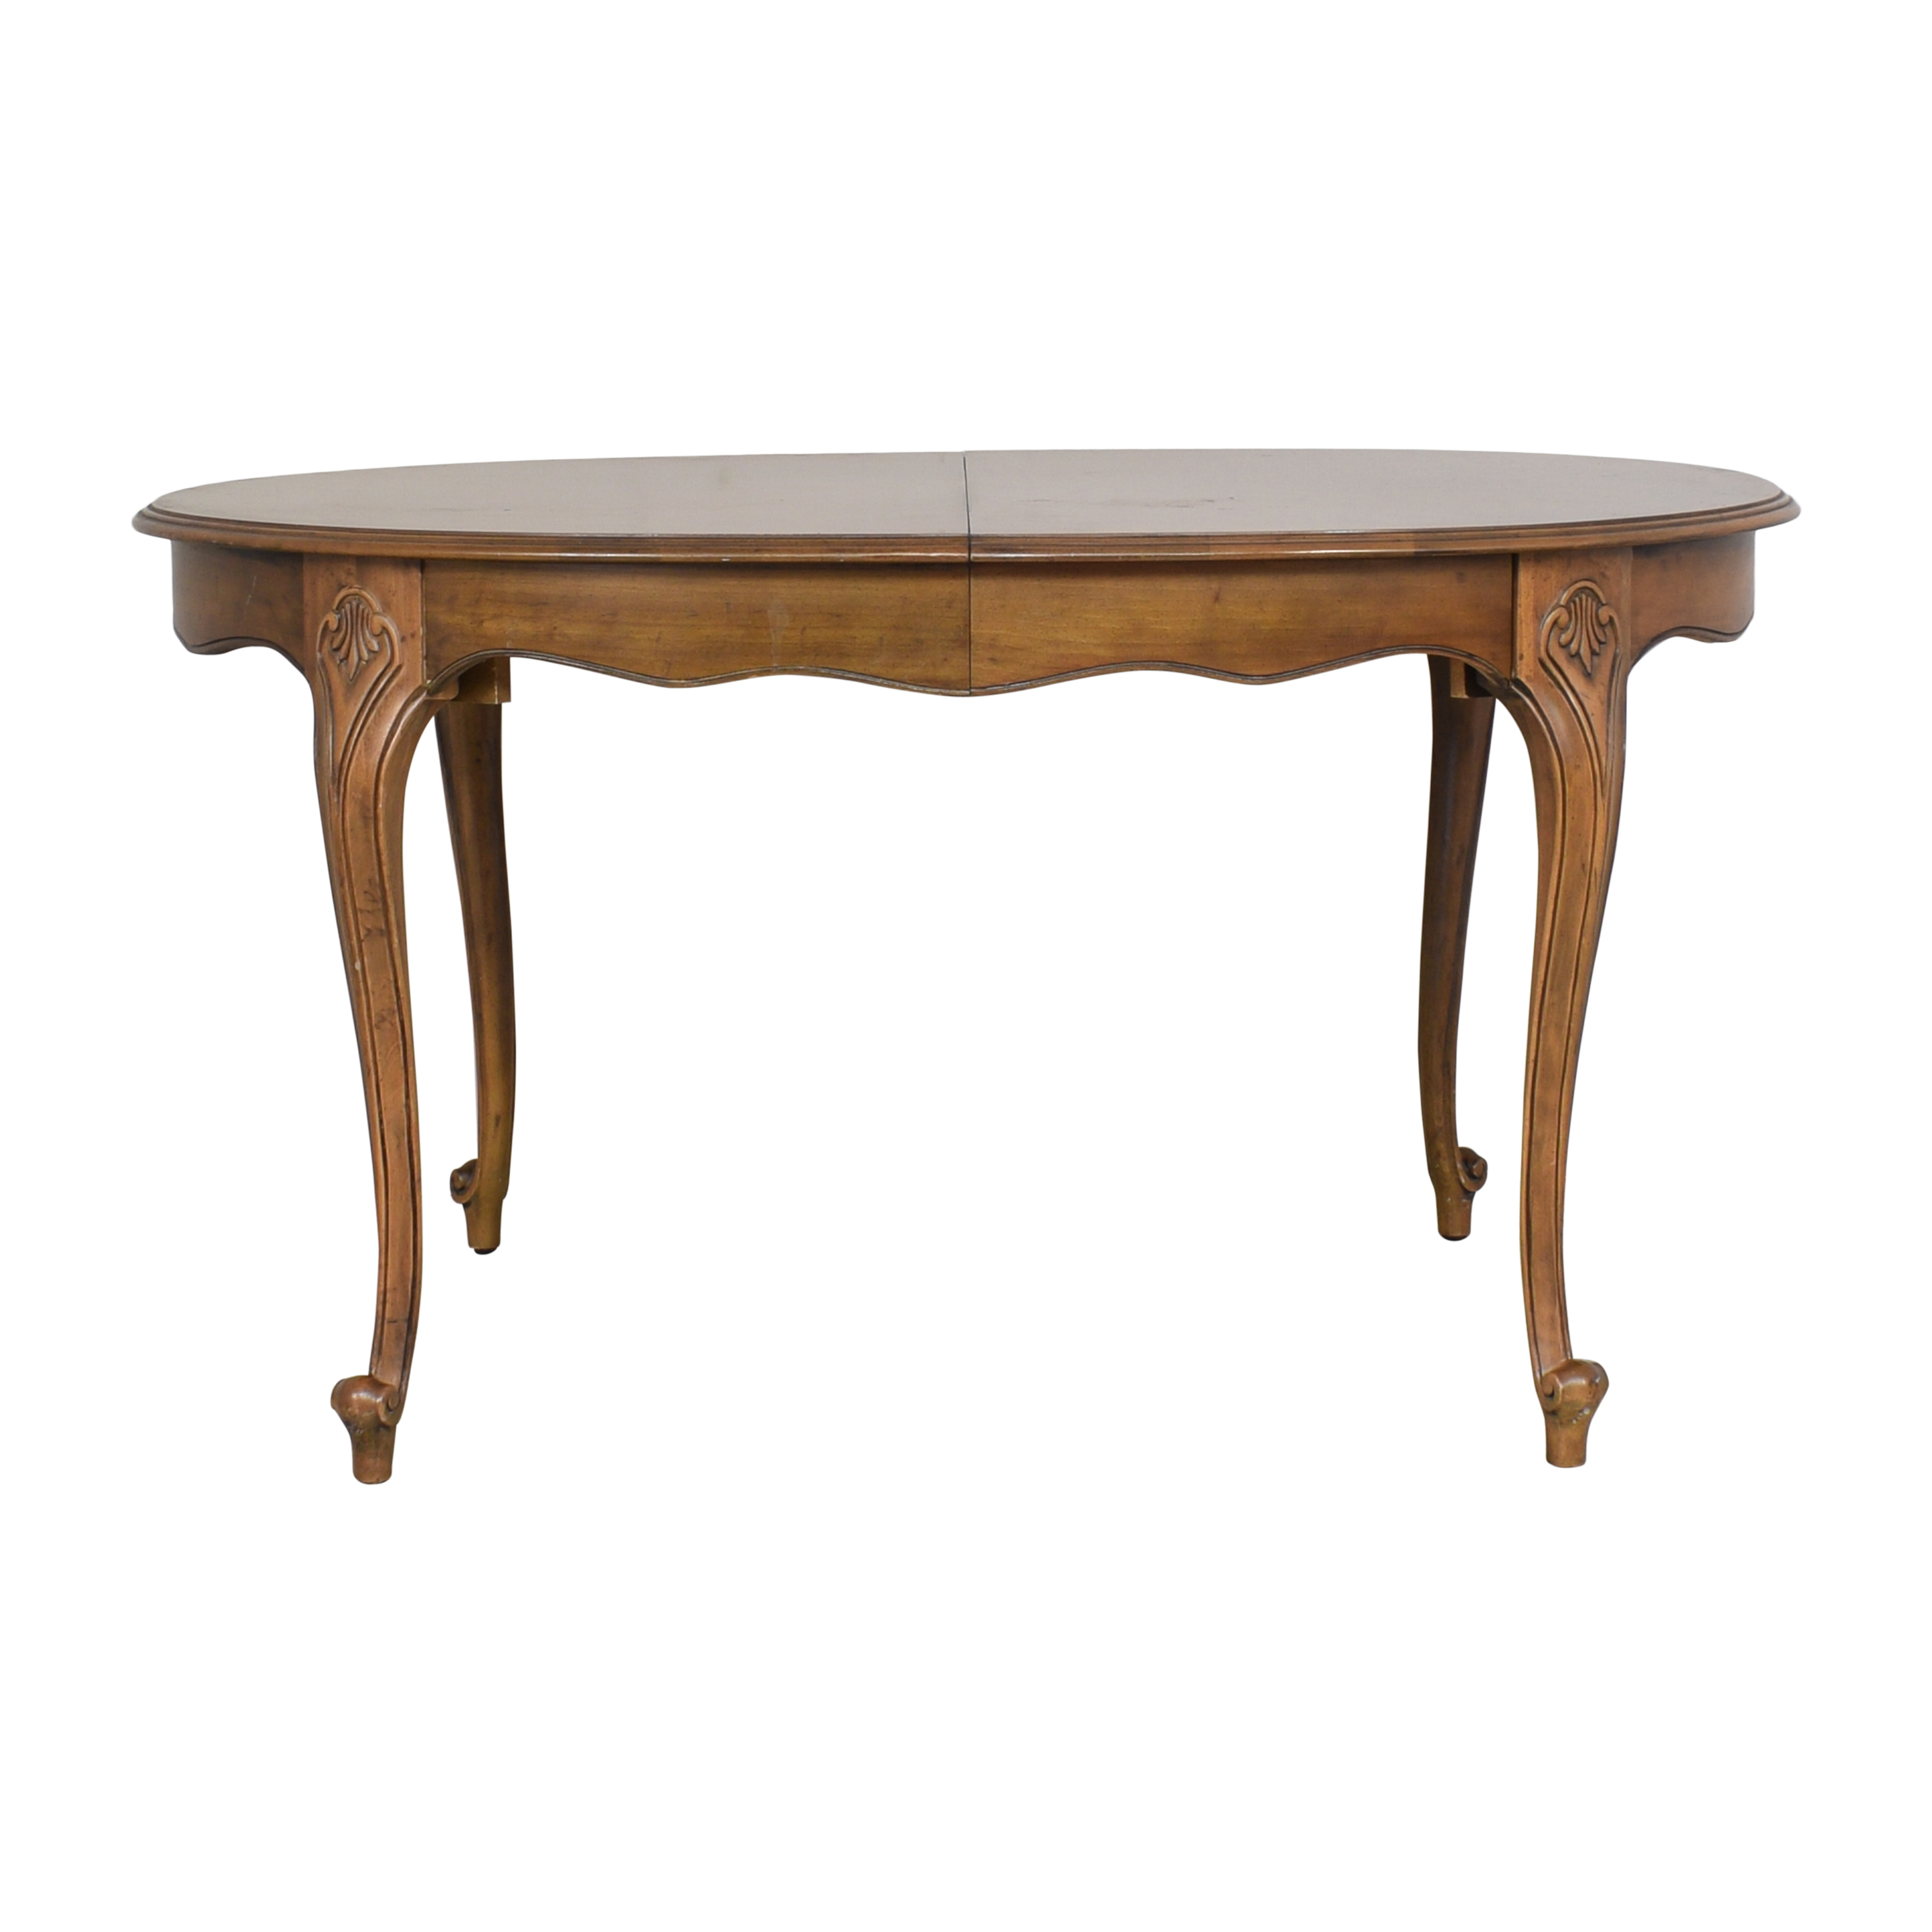 Drexel Drexel Touraine Extendable Dining Table nyc